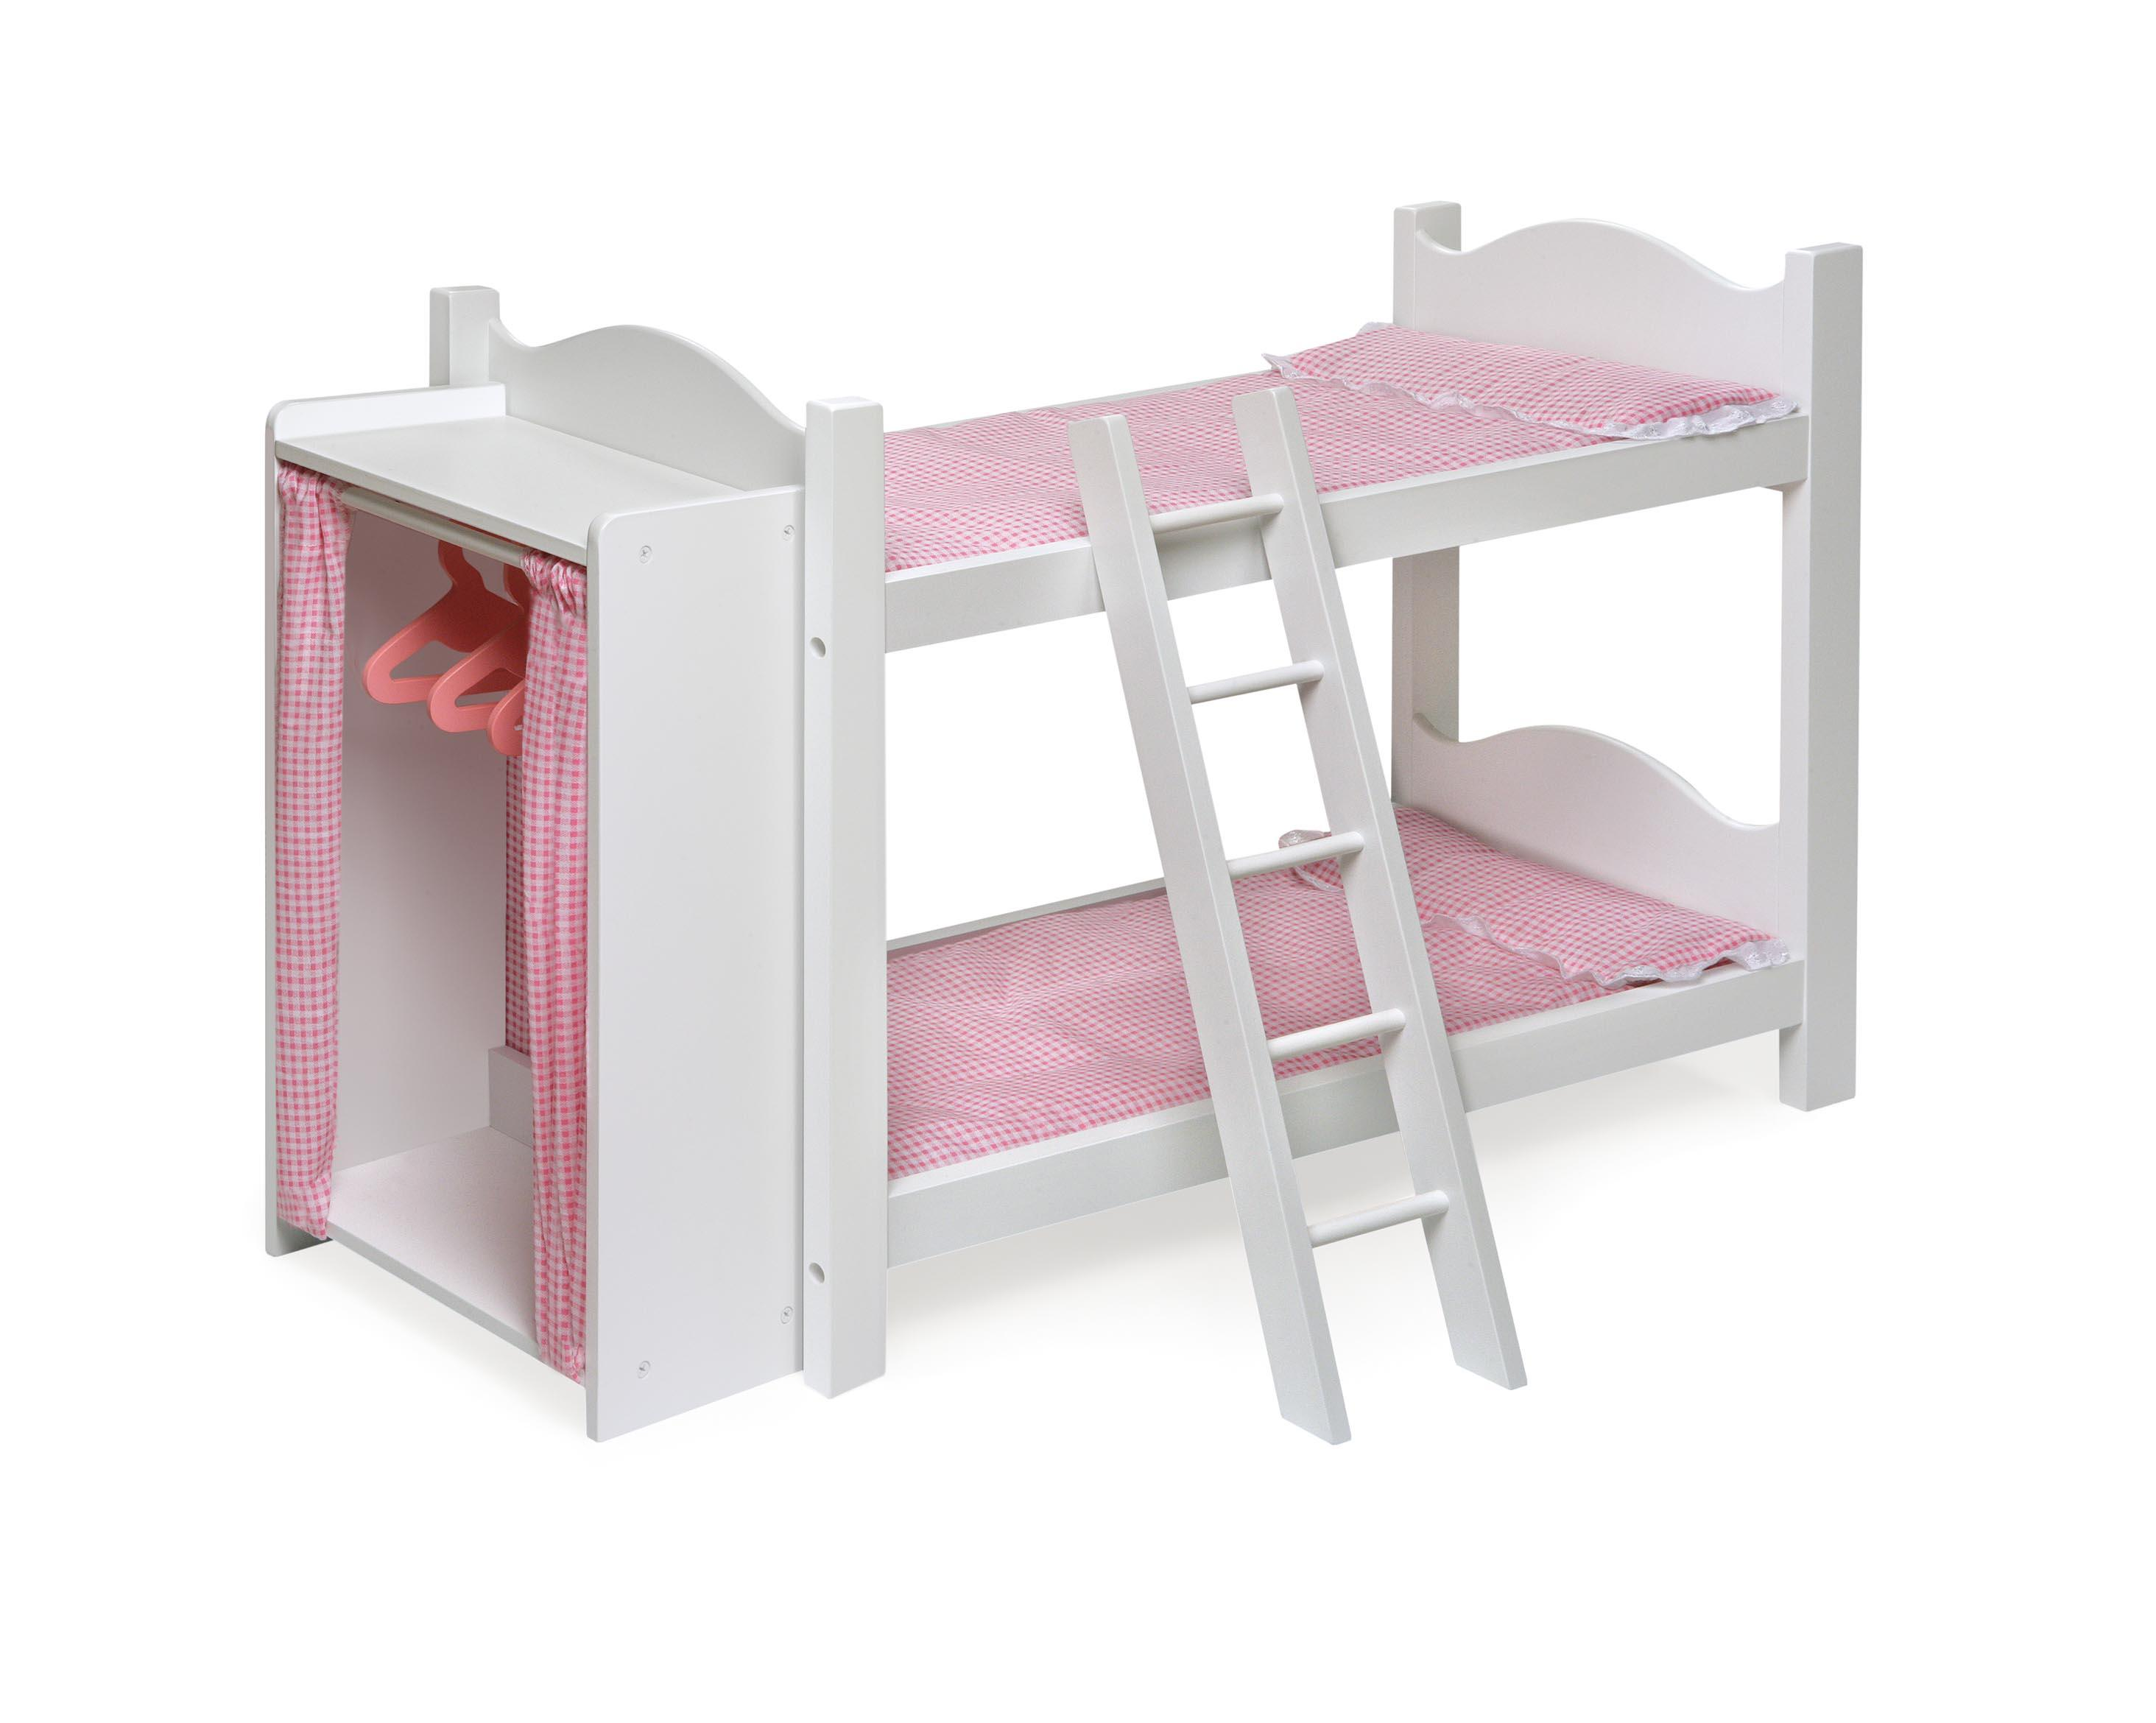 Kids Bed Accessories Furniture Home Goods Appliances Athletic Gear Fitness